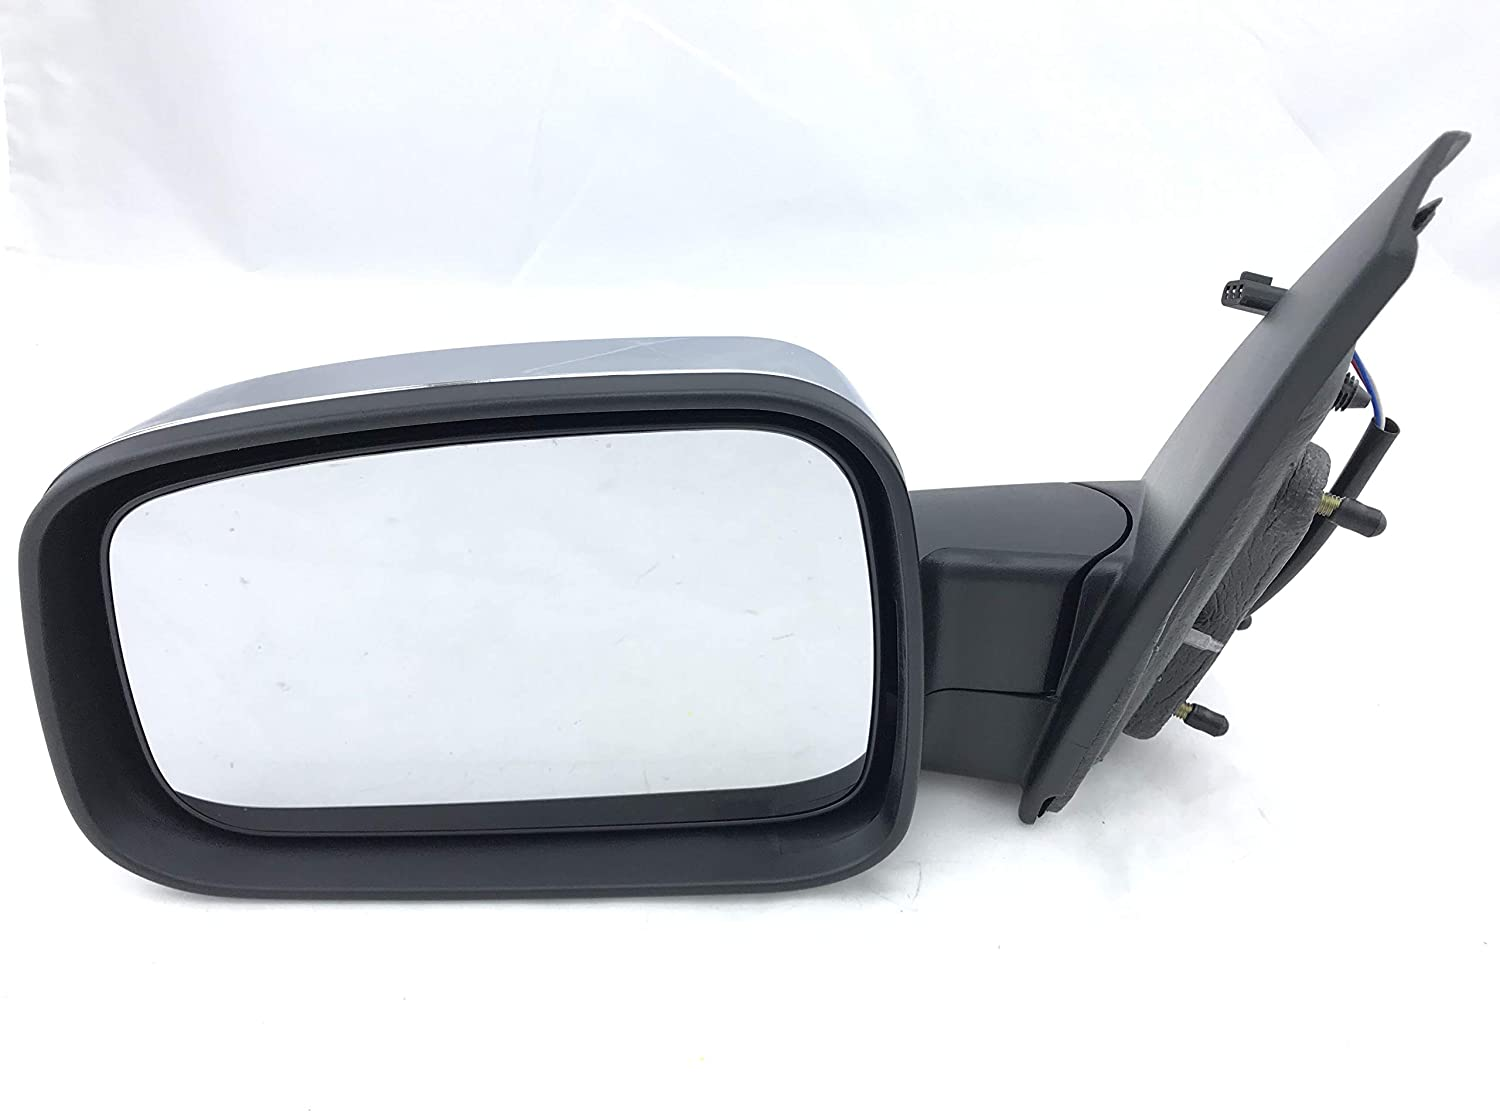 Passenger Side Mirror for Chevrolet HHR 06-11 PWR N-HT MIR LH   Left Outside Rear View Mirror Parts Link #: 20923831 CHROME OE: GM1320368